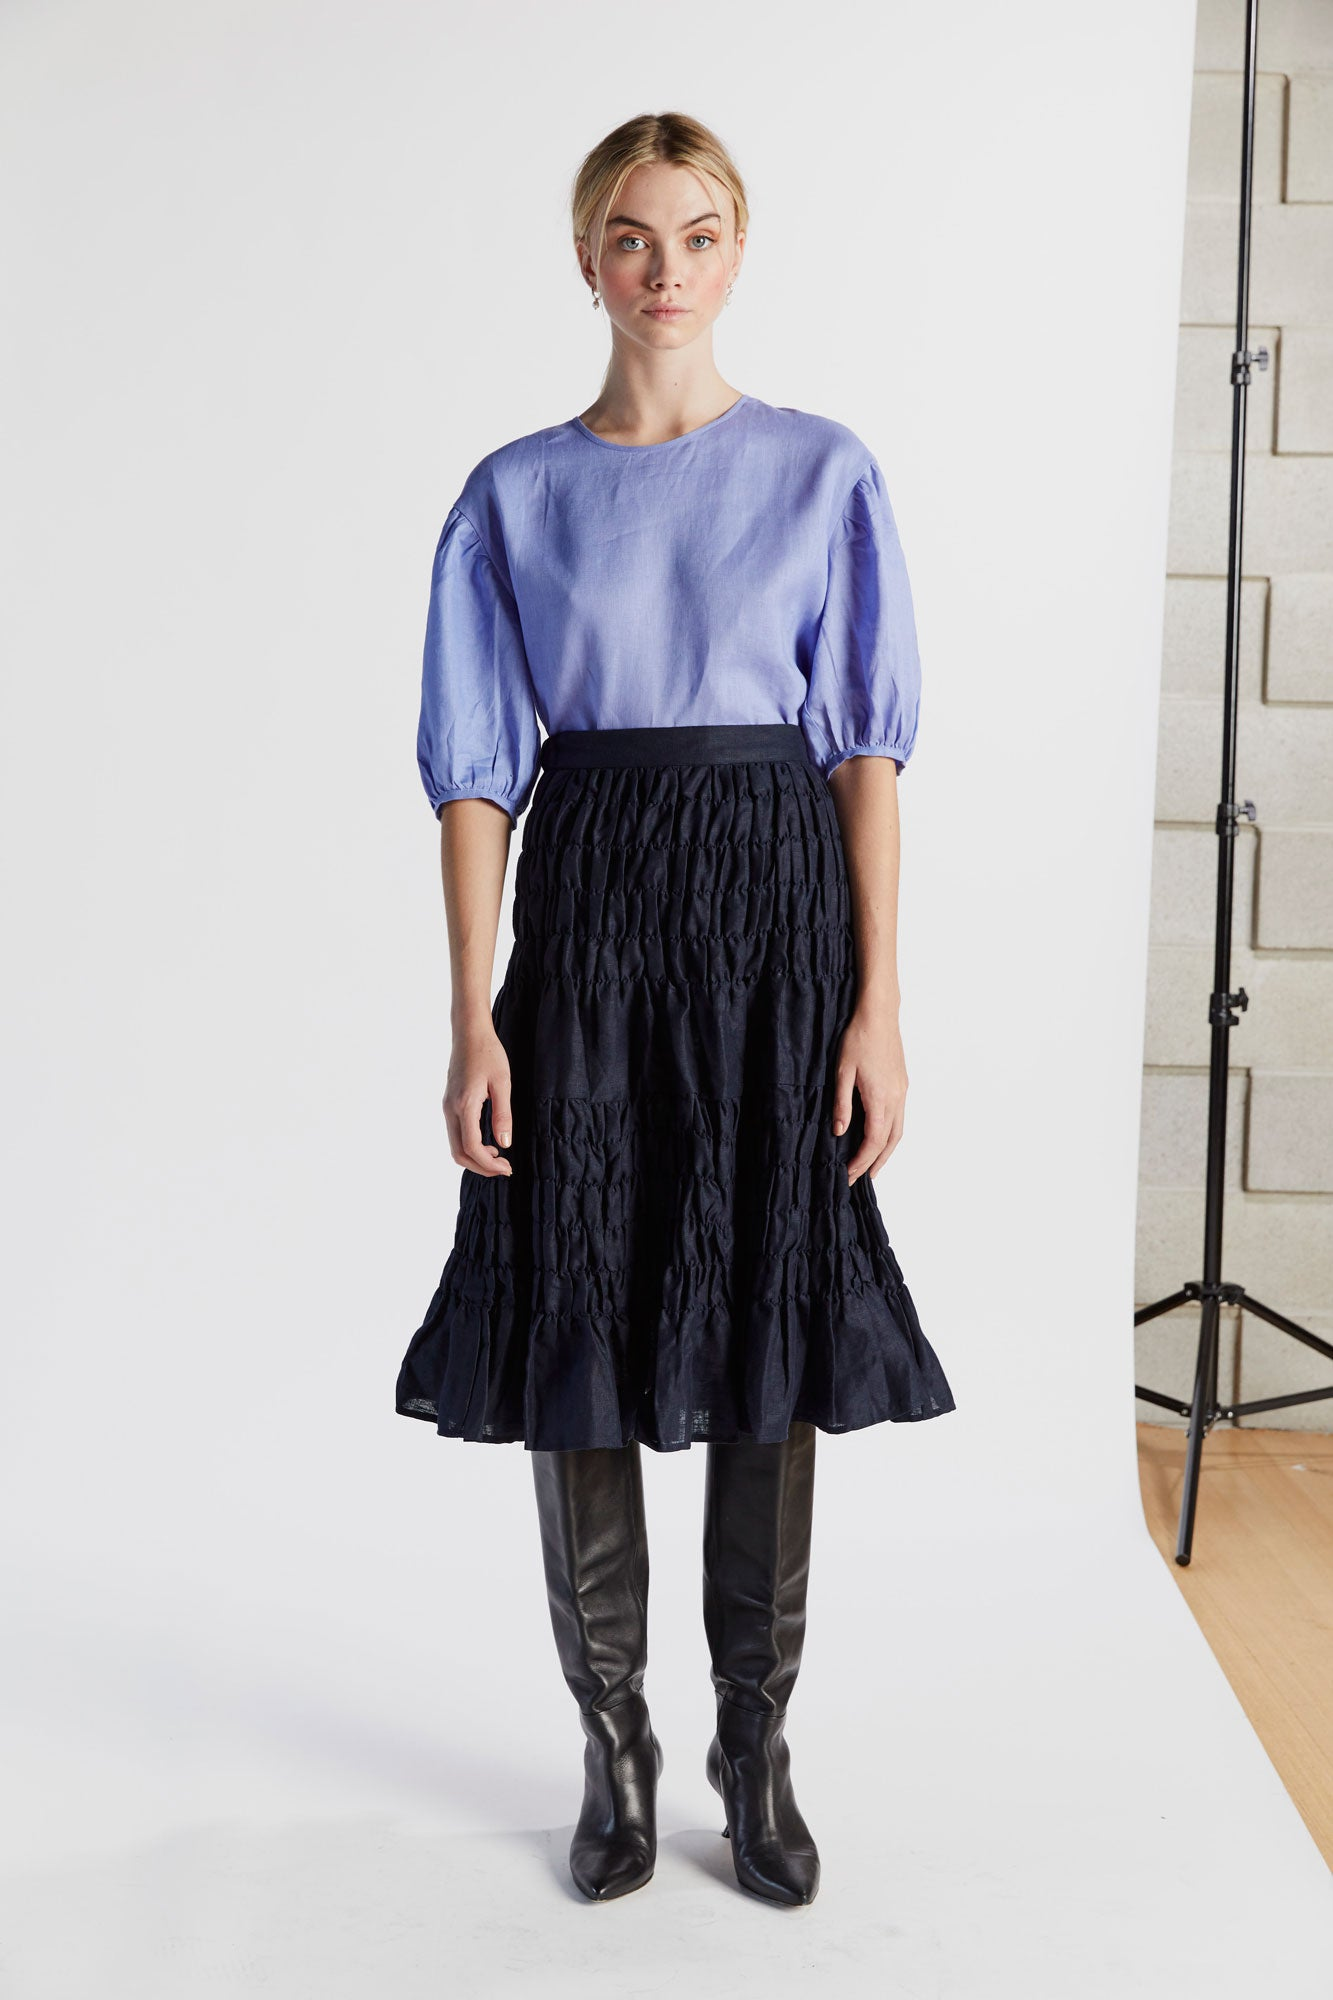 Bing Bang Breakfast Skirt in Indigo - hej hej